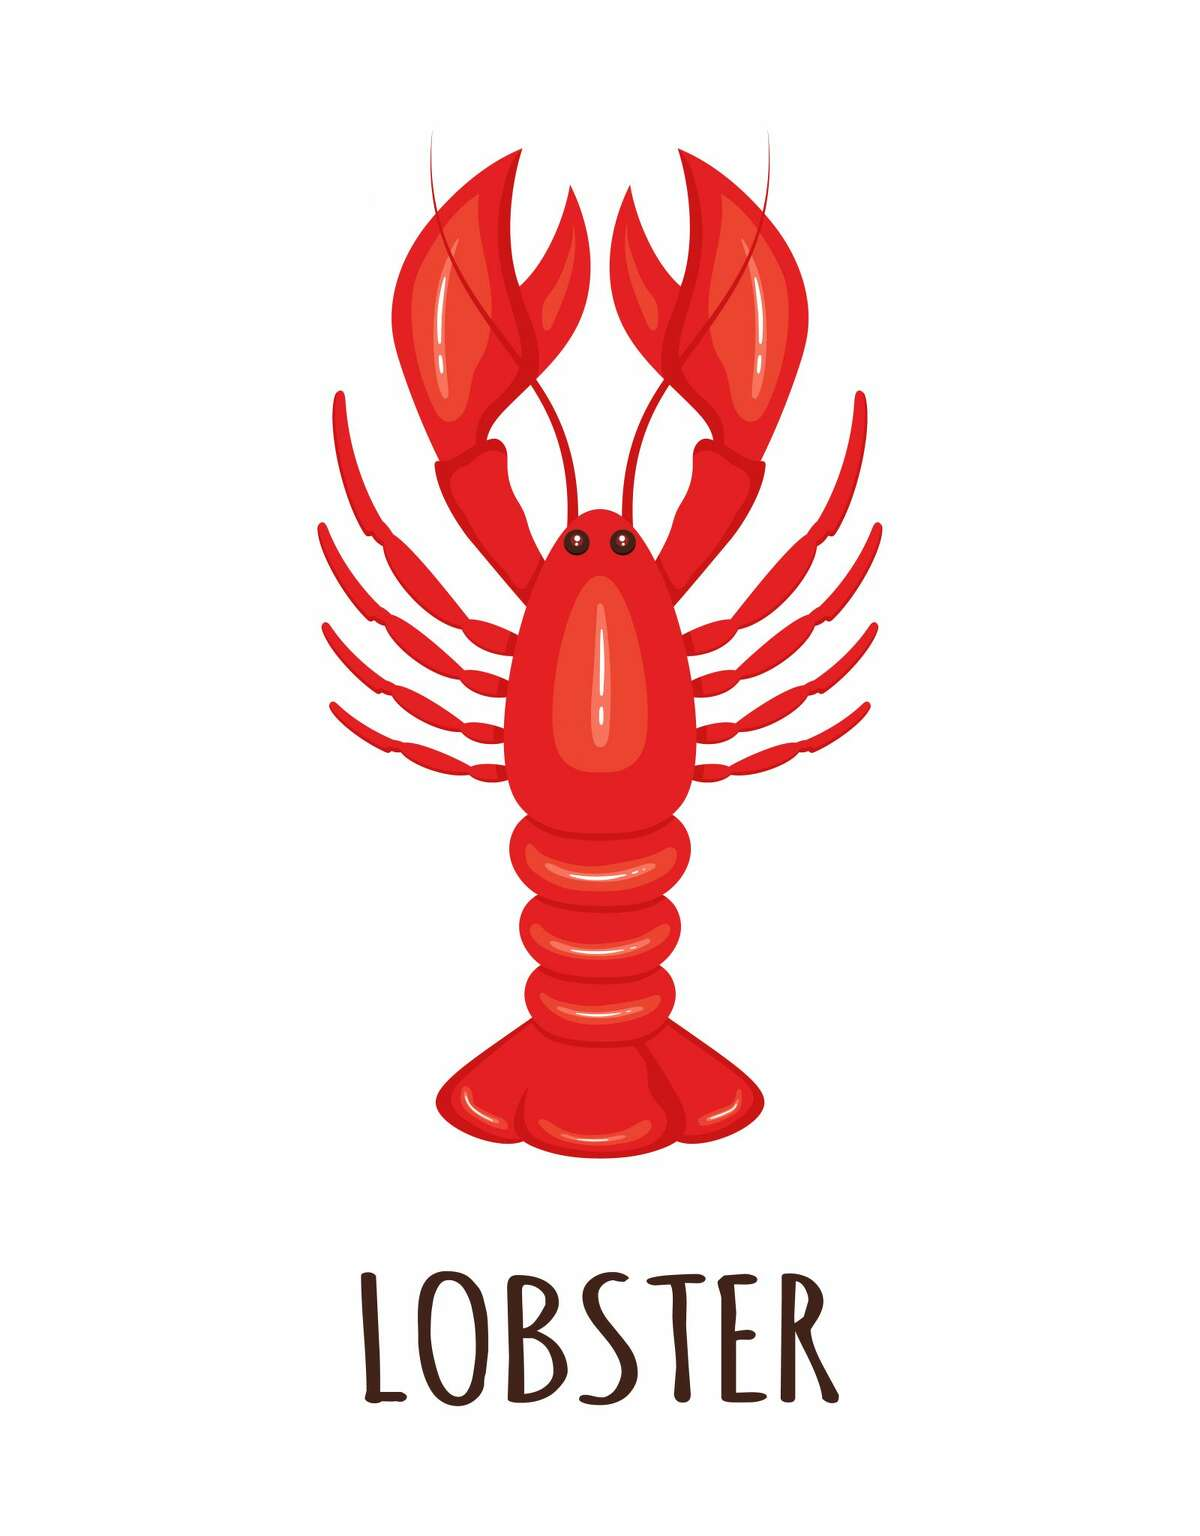 Pics or it didn't happen. Post a photo of your take-out steamed lobster meal, lobster roll, oysters on the half shell or any seafood from one of Connecticut's seaside shacks. Whether you prefer a traditional Connecticut-style lobster roll with warm butter or are craving some fried clams,choices for a seafood meal abound on the Connecticut's coastline, there are a host of seaside stops to pick up your favorite.